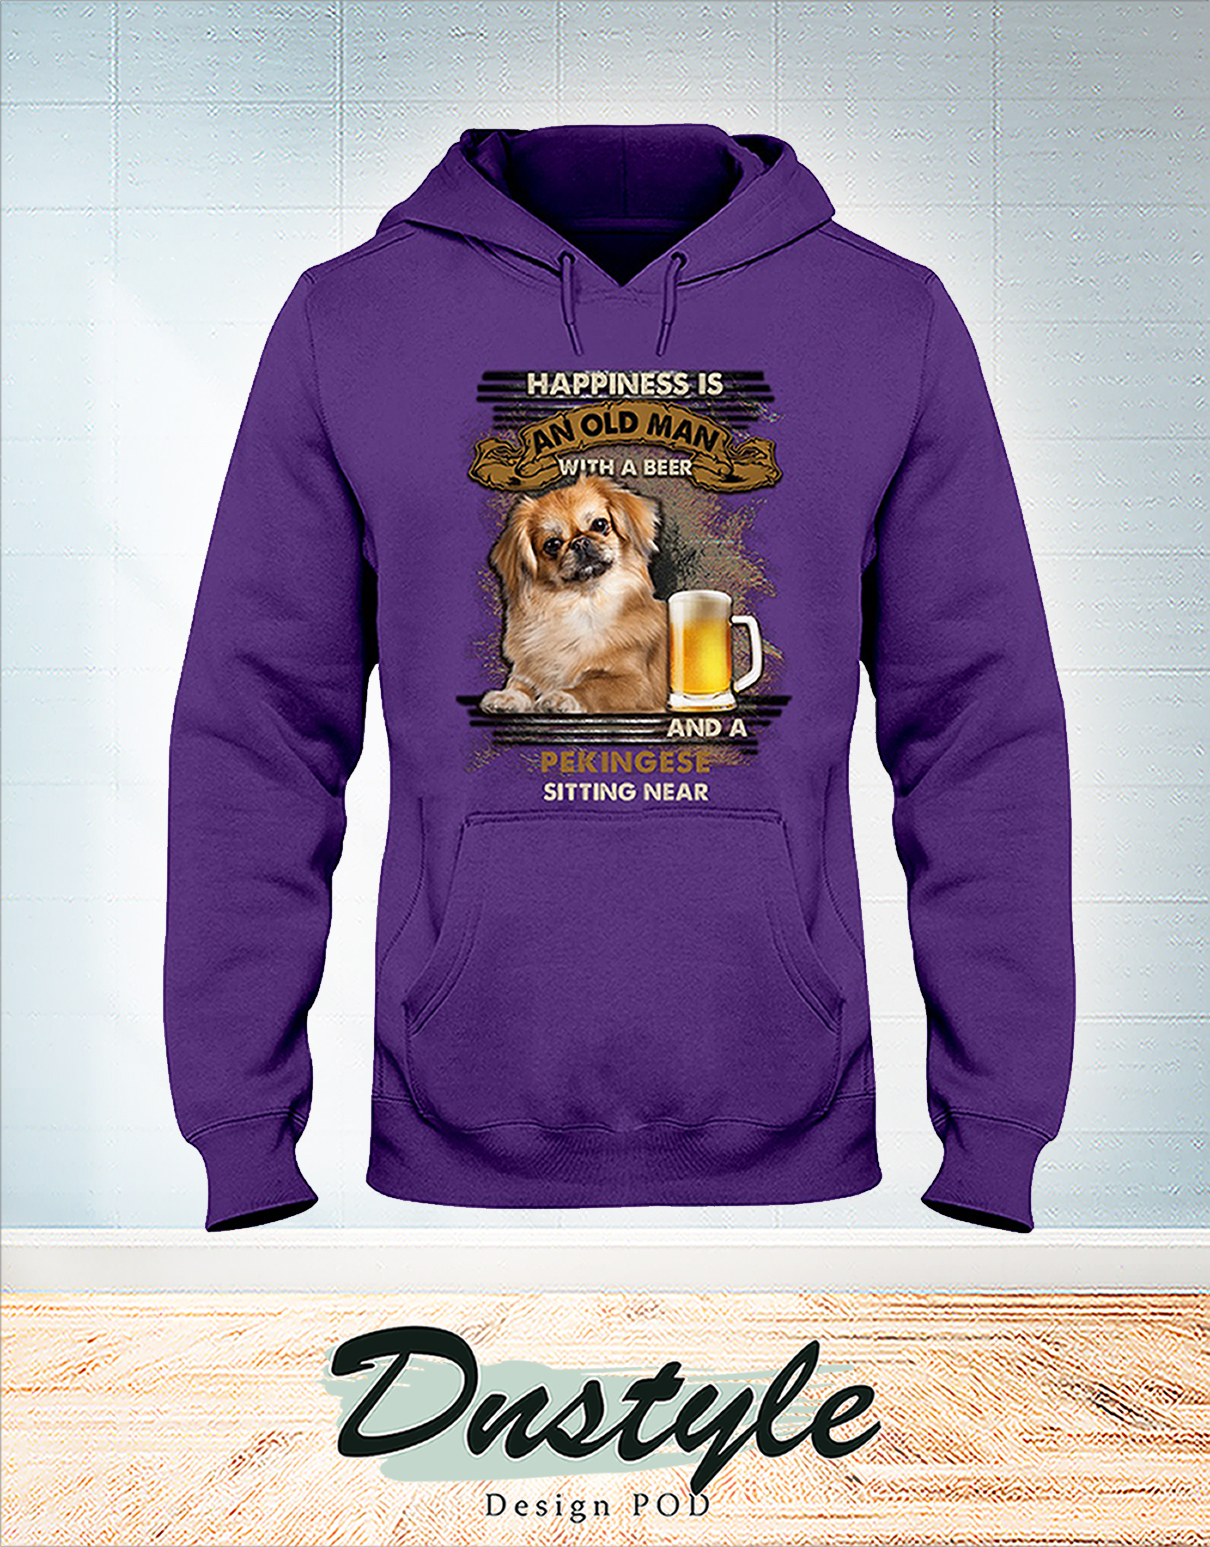 Happiness is an old man with a beer and a Pekingese sitting near hoodie